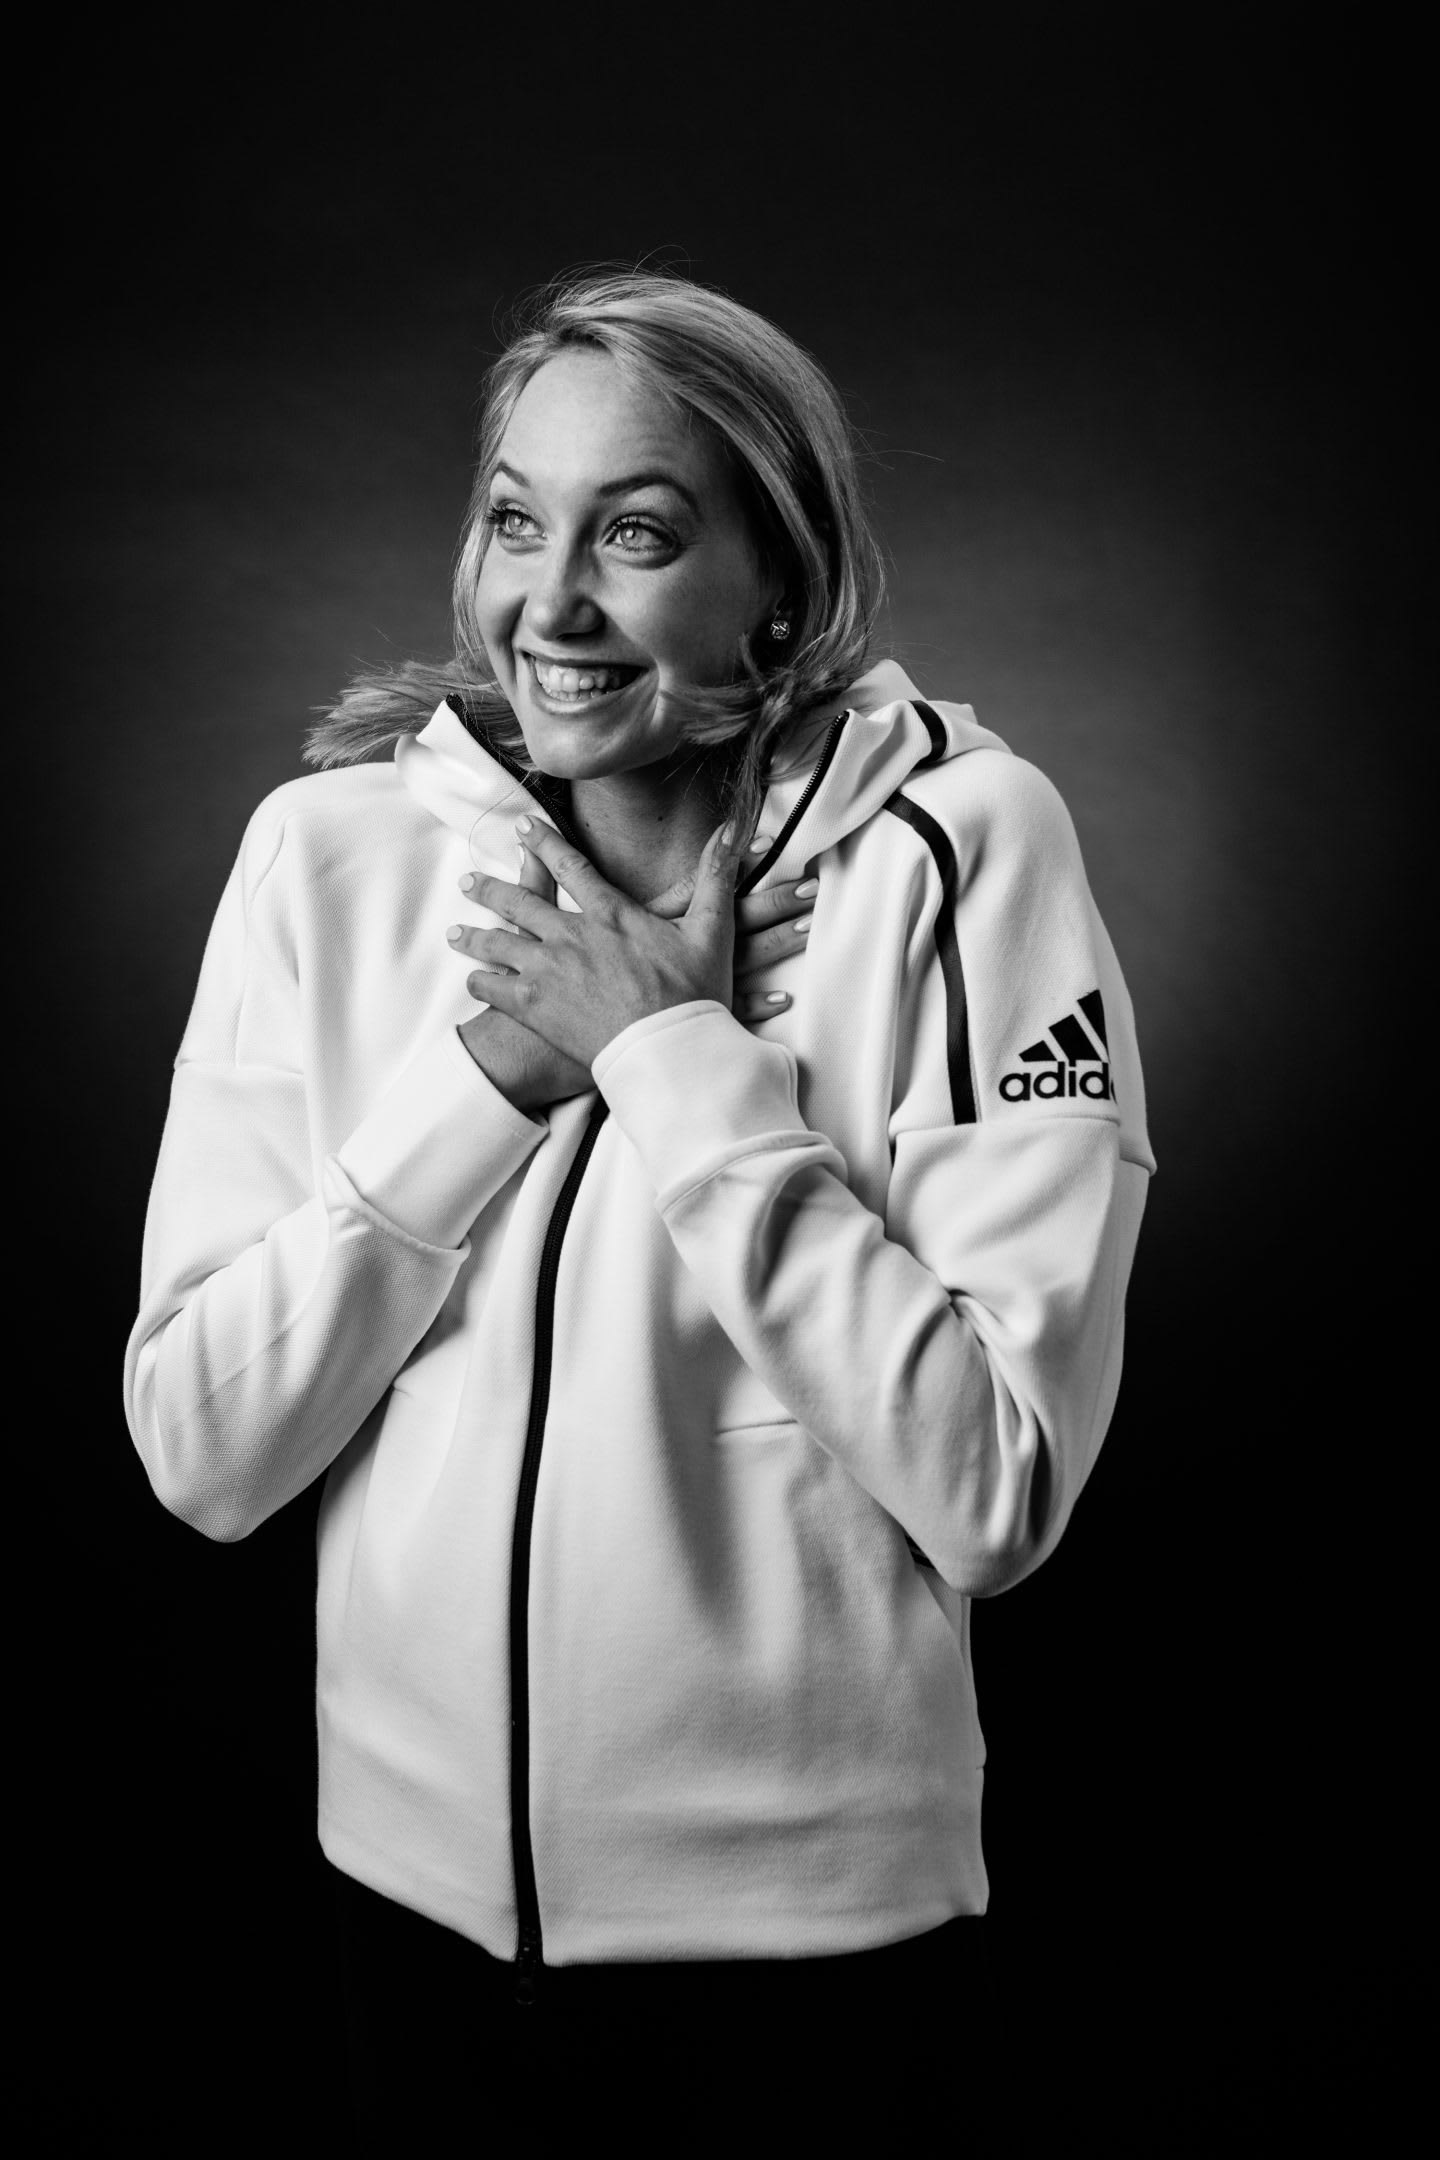 woman in white hoodie happy smiling aussie swimmer madison wilson talks voluntary work time management handling pressure